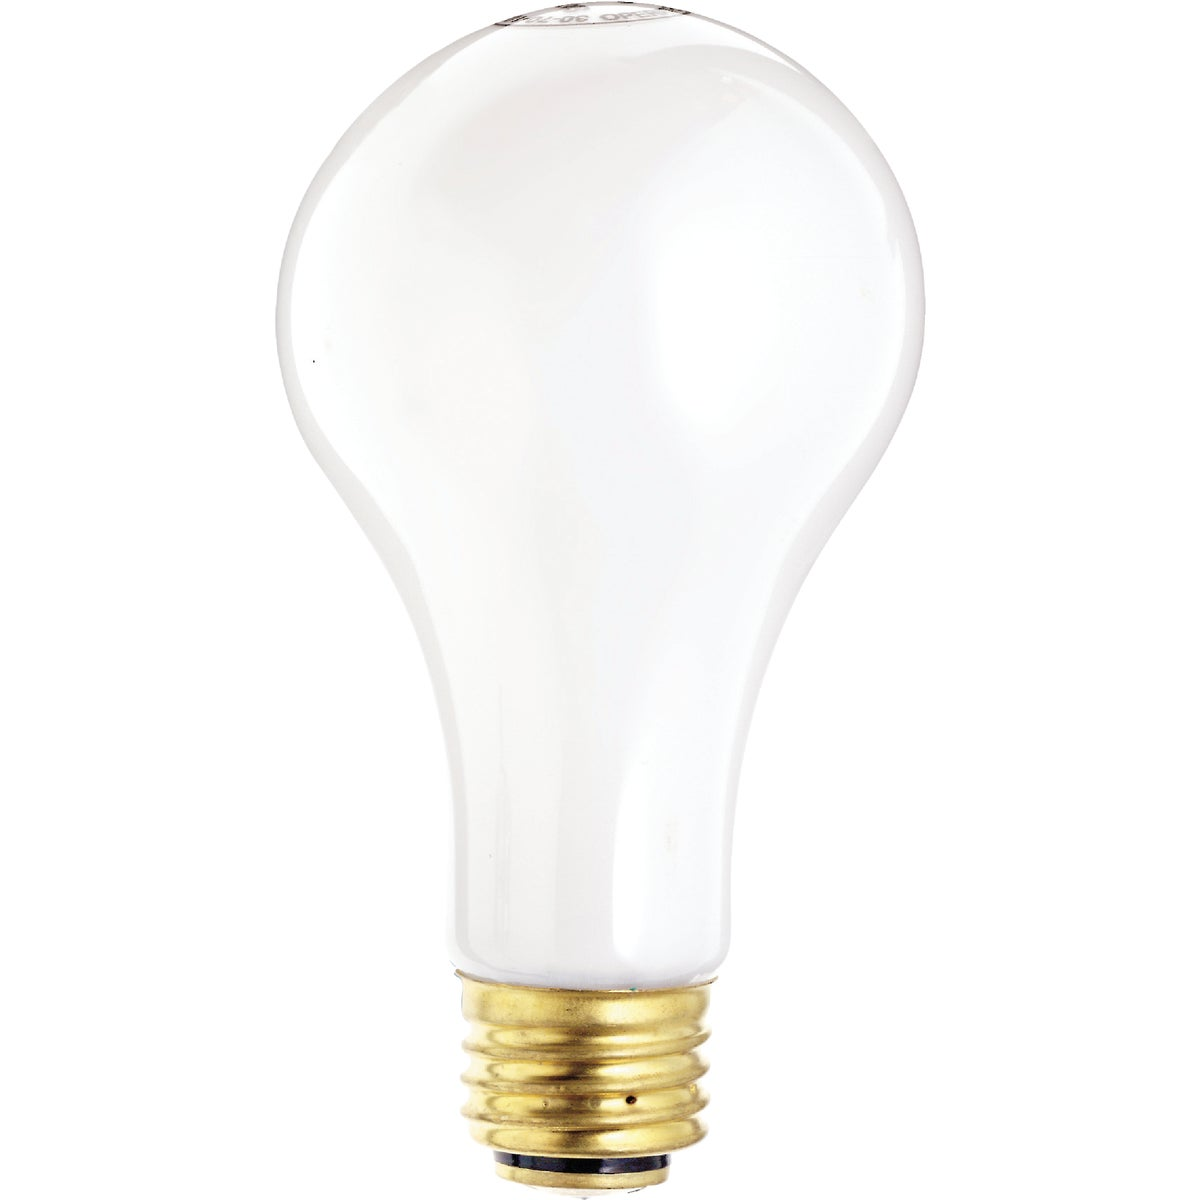 GE Lighting 30/100W SW 3-WAY BULB 97493.3